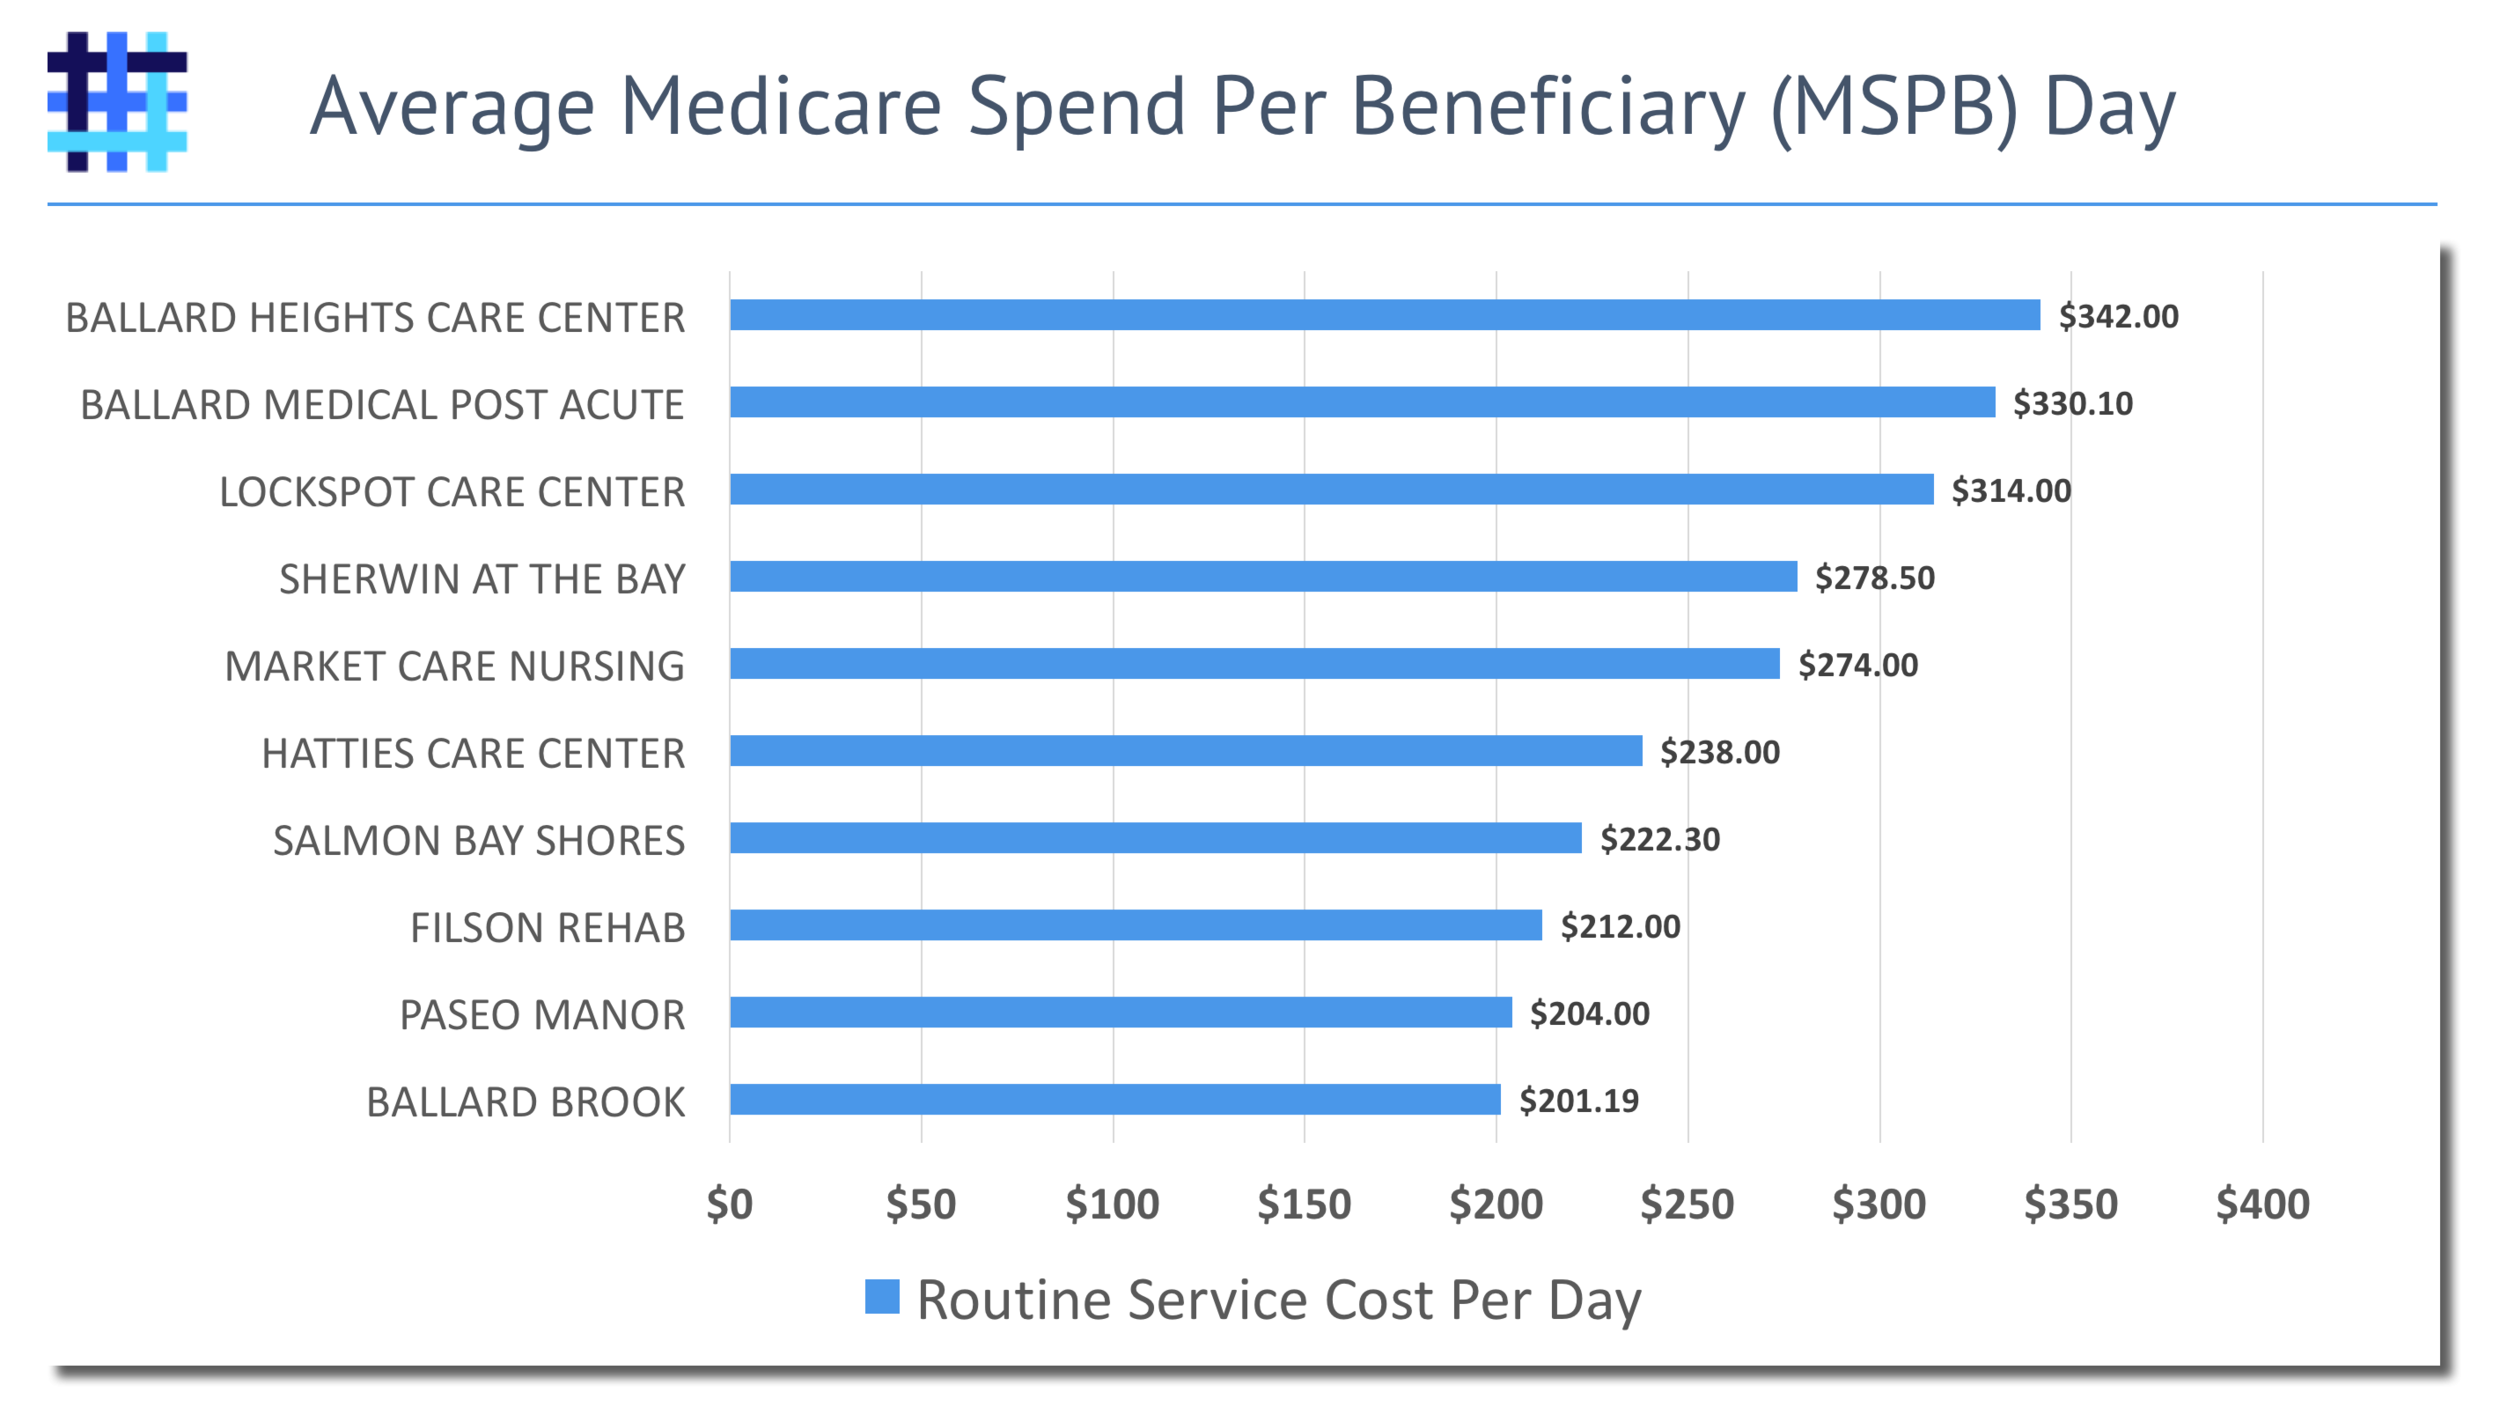 Hospital to Nursing Home Average Spend Per Medicare Beneficiary (MSPB)